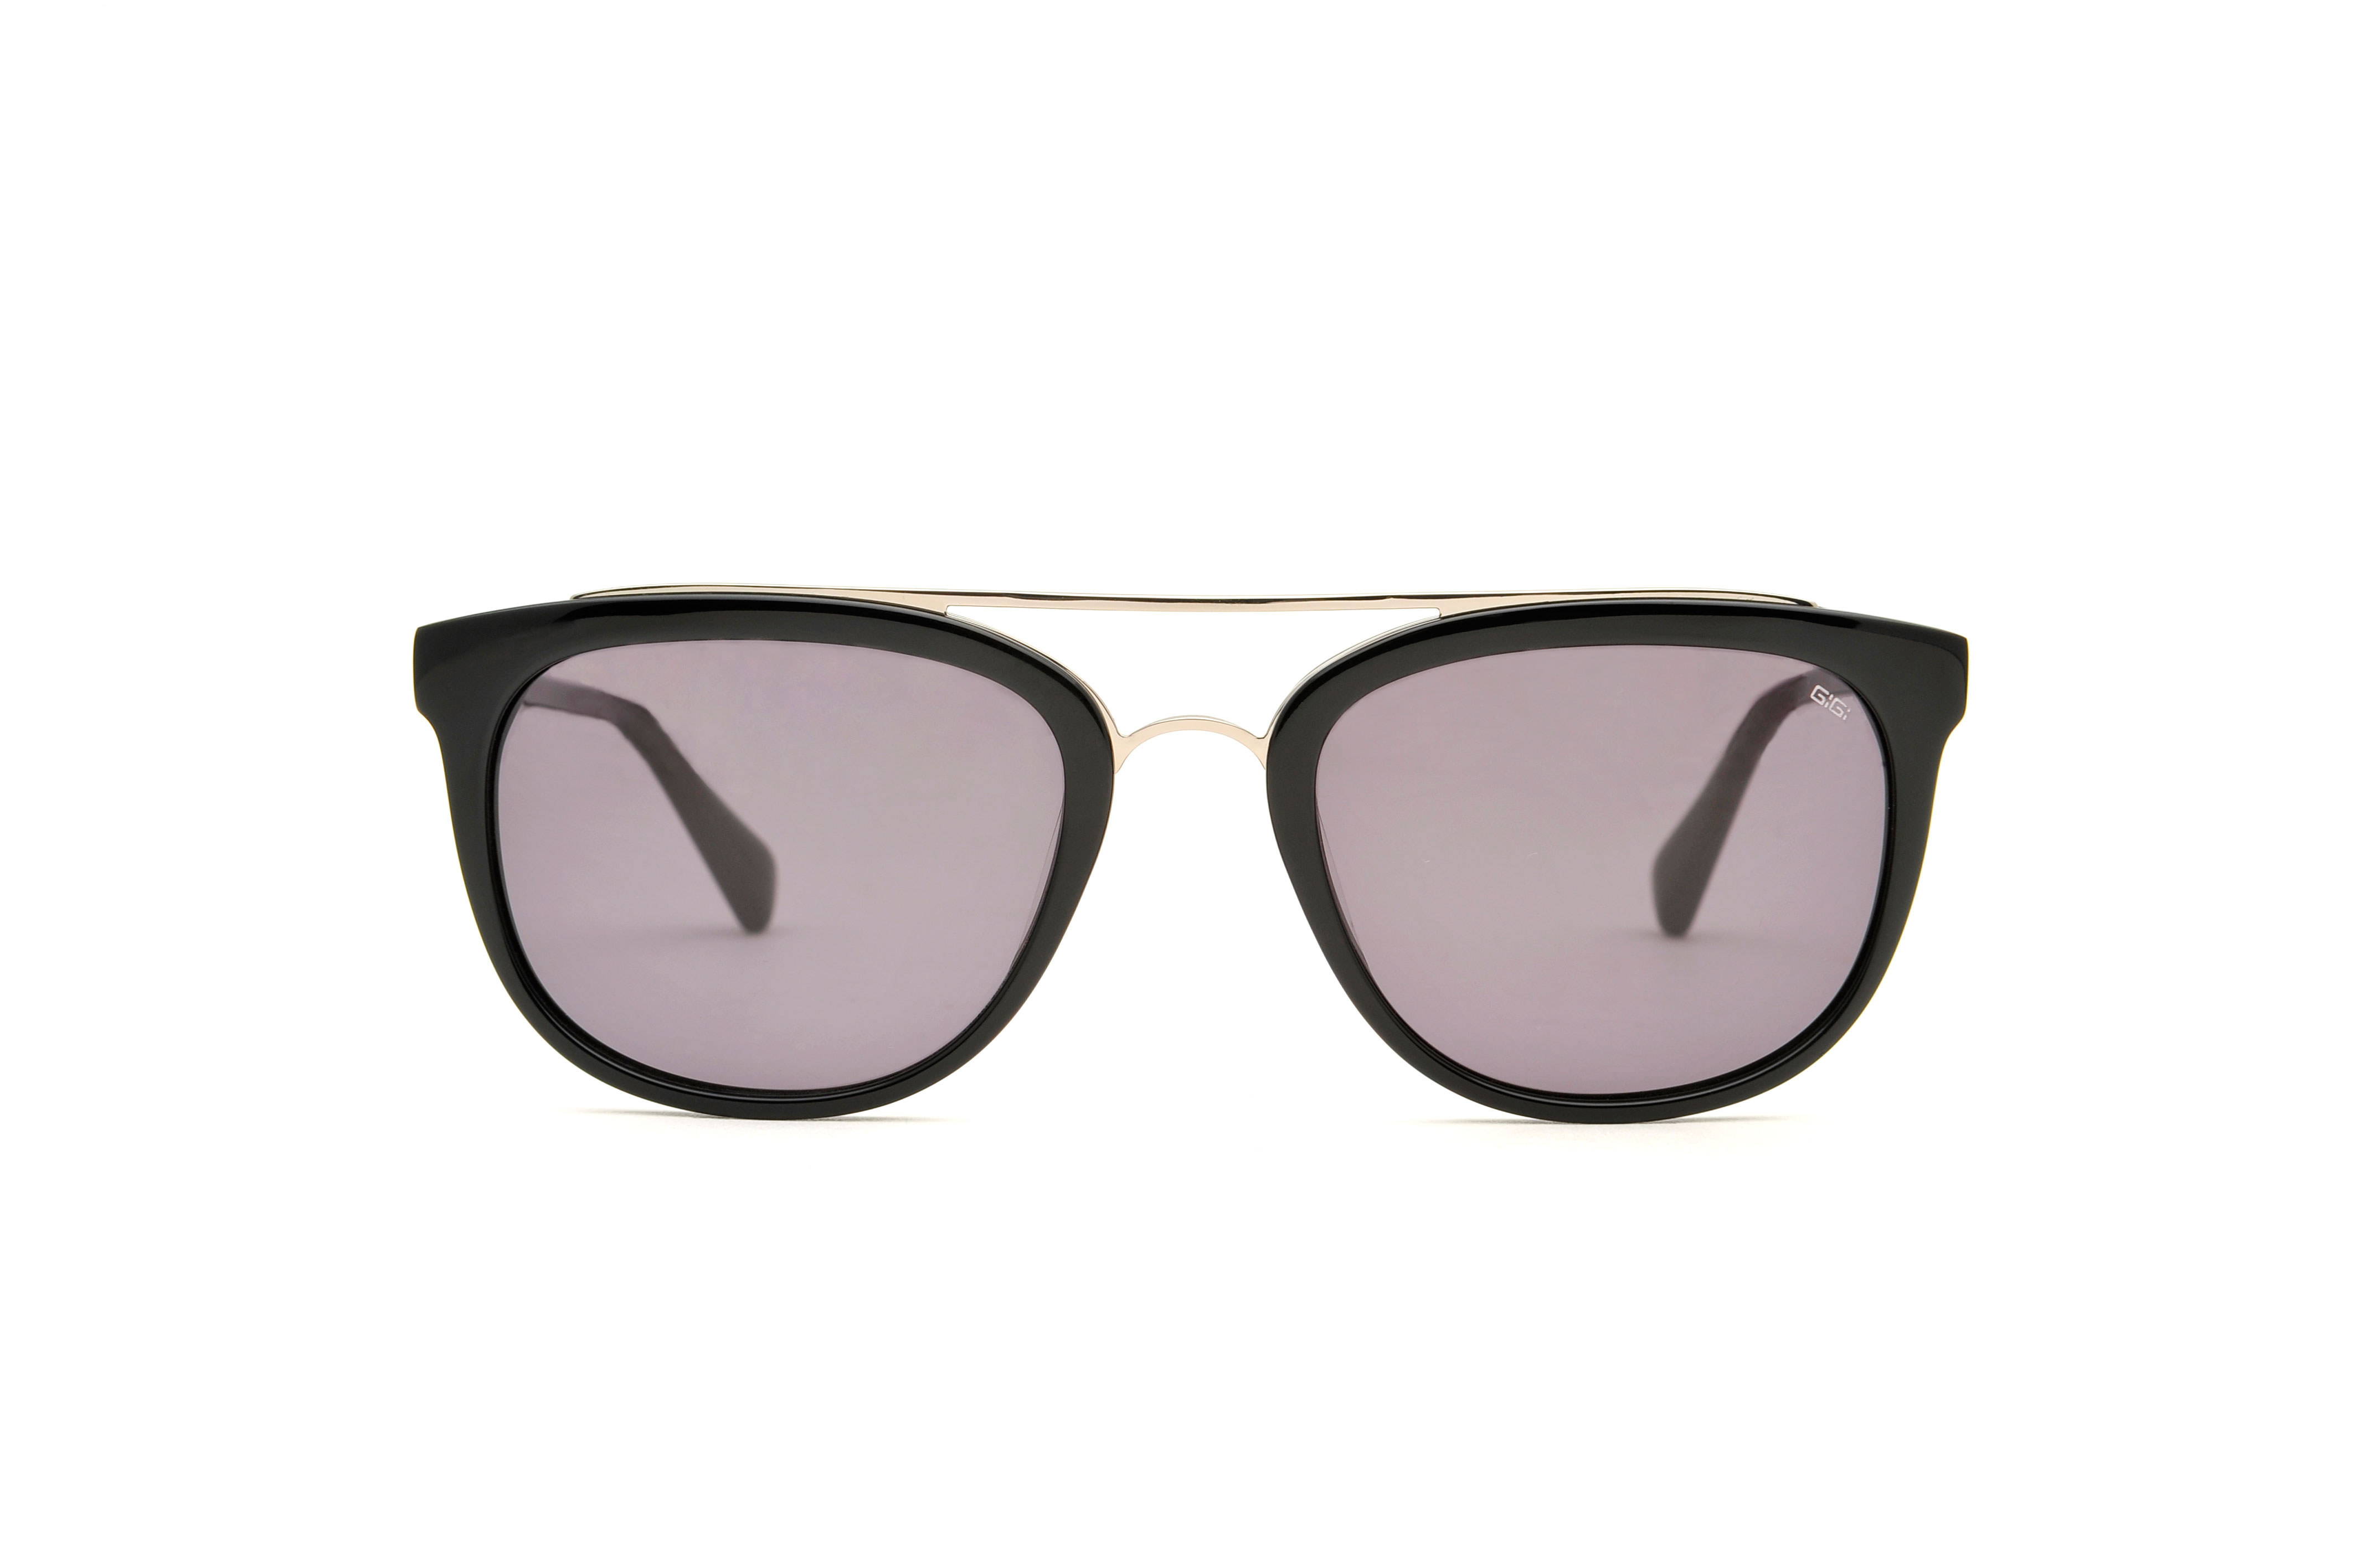 Melville acetate/metal aviator black sunglasses by GIGI Studios